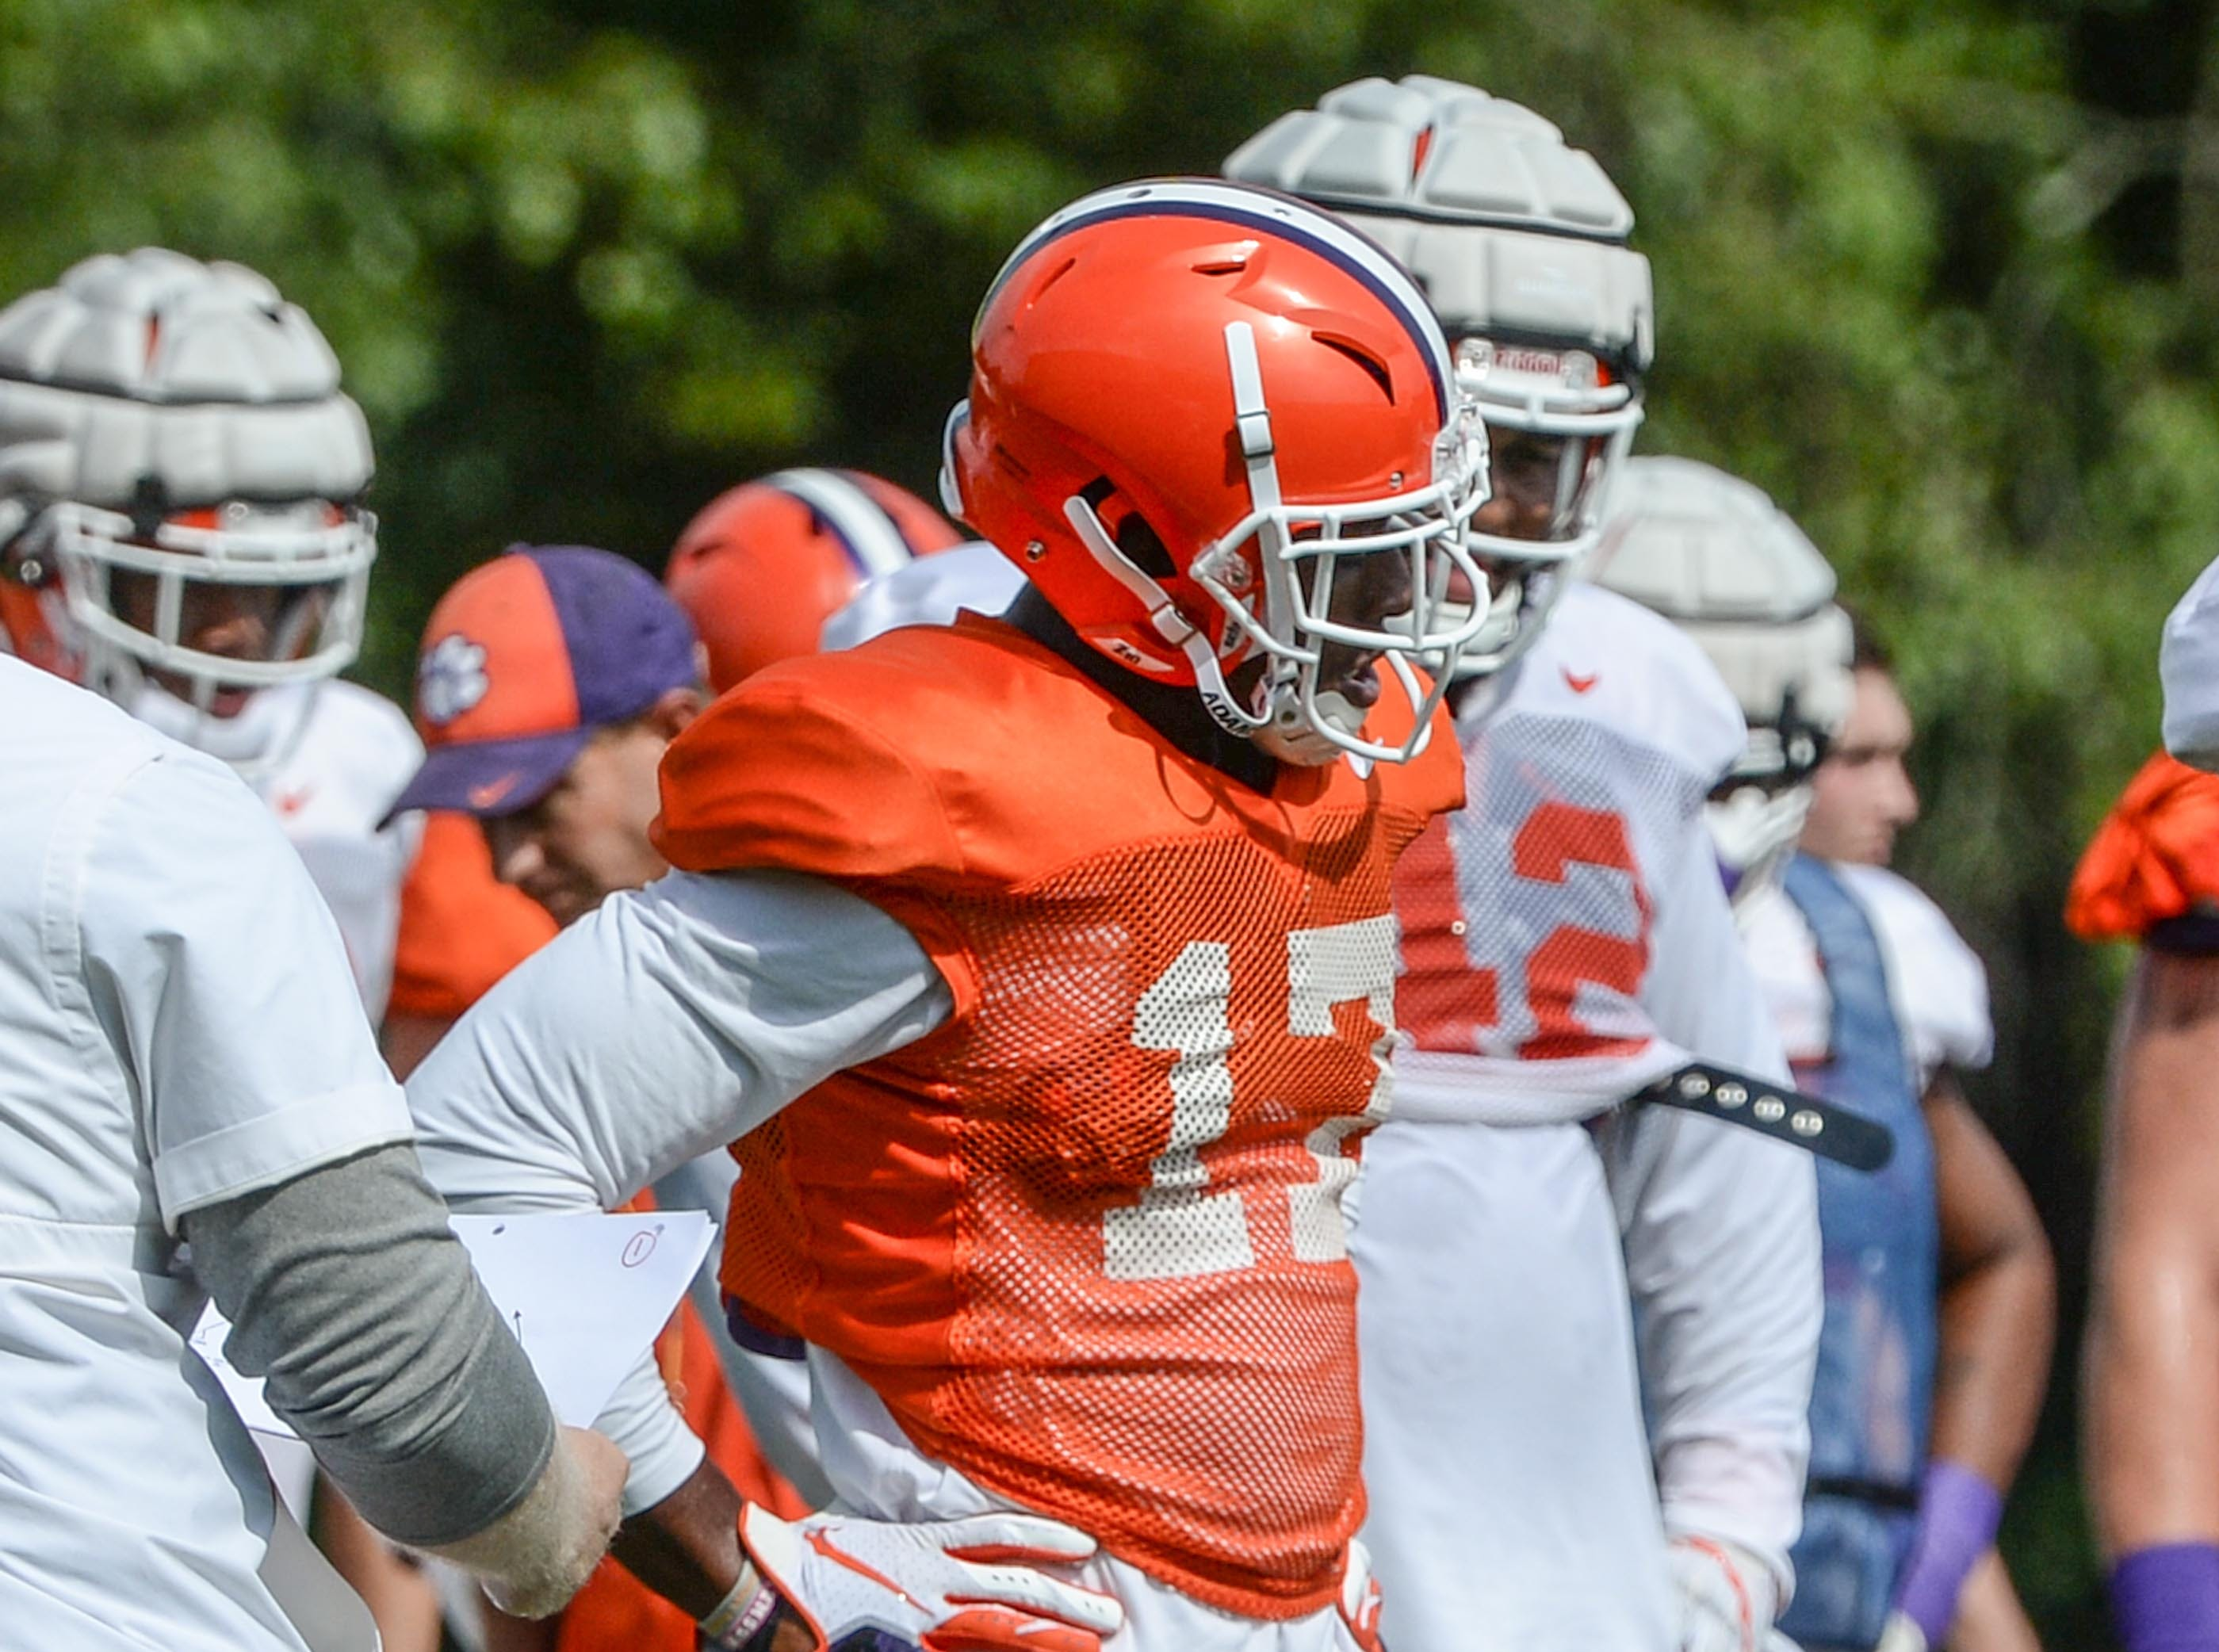 Clemson defensive end Justin Mascoll (17) during fall practice in Clemson on Wednesday.